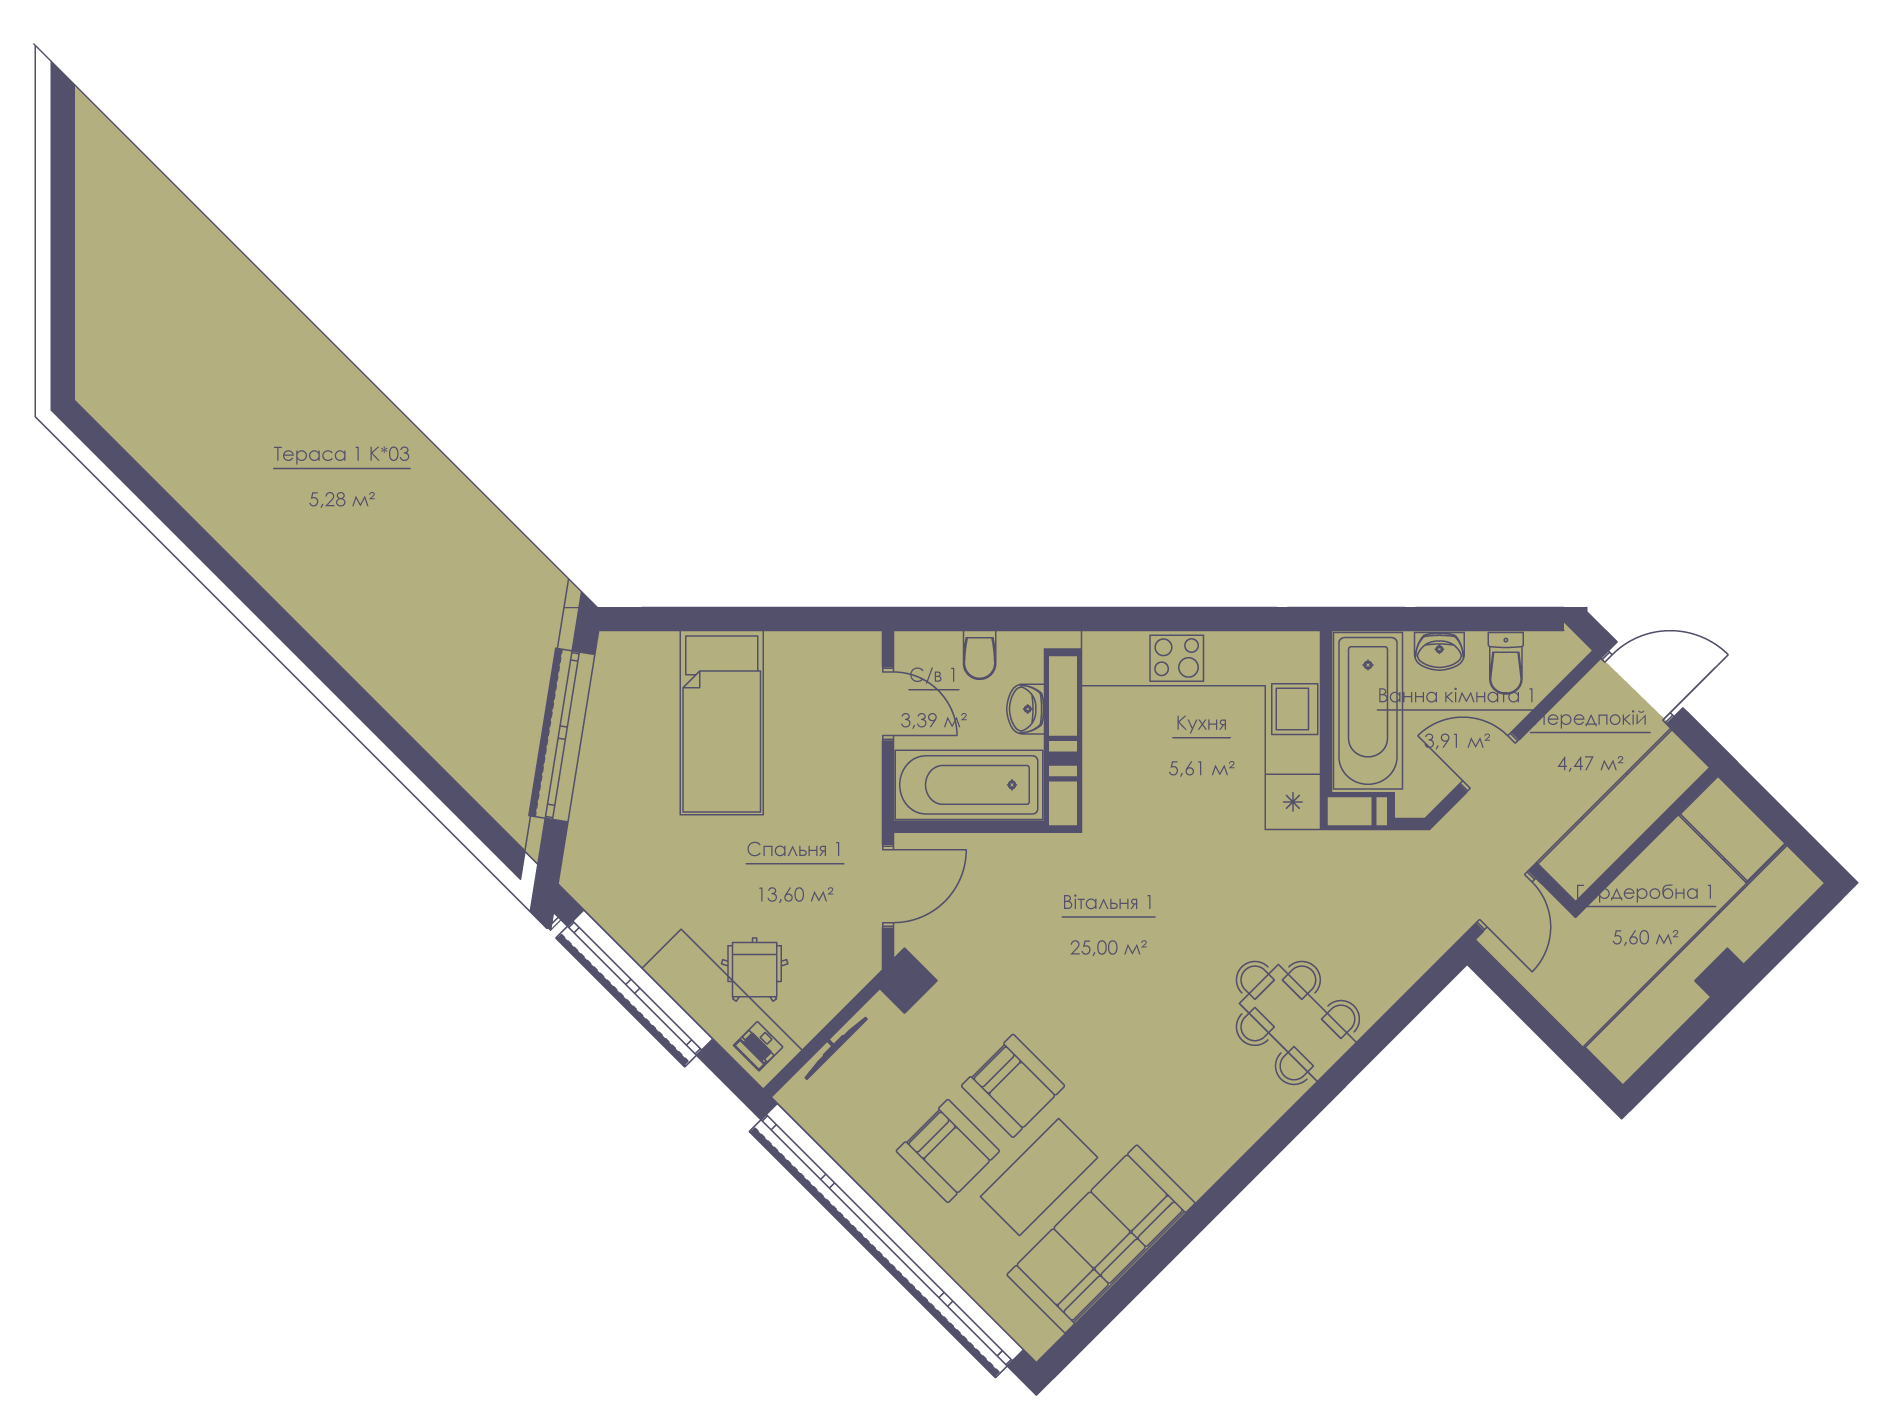 Apartment layout KV_28_2.2b_1_1_4-1